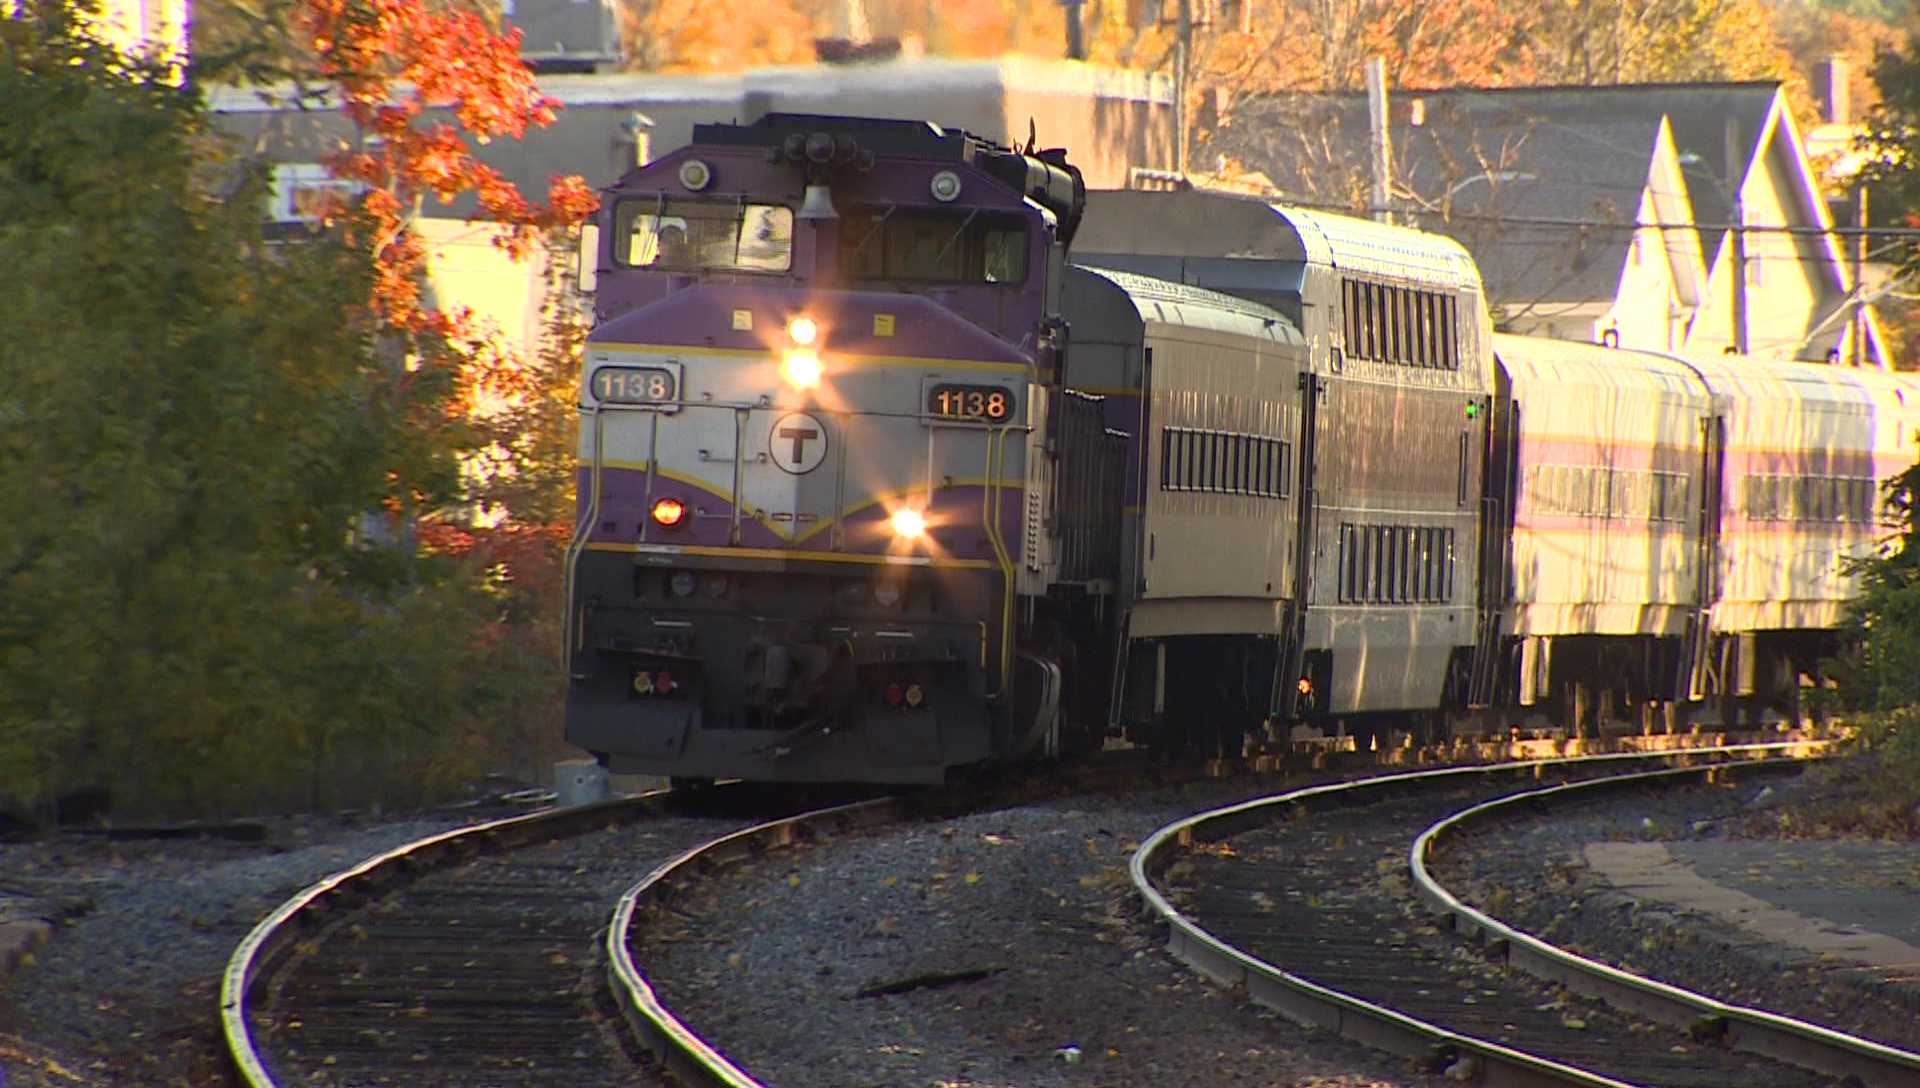 Plan to improve Wi-Fi on MBTA Commuter Rail struck down